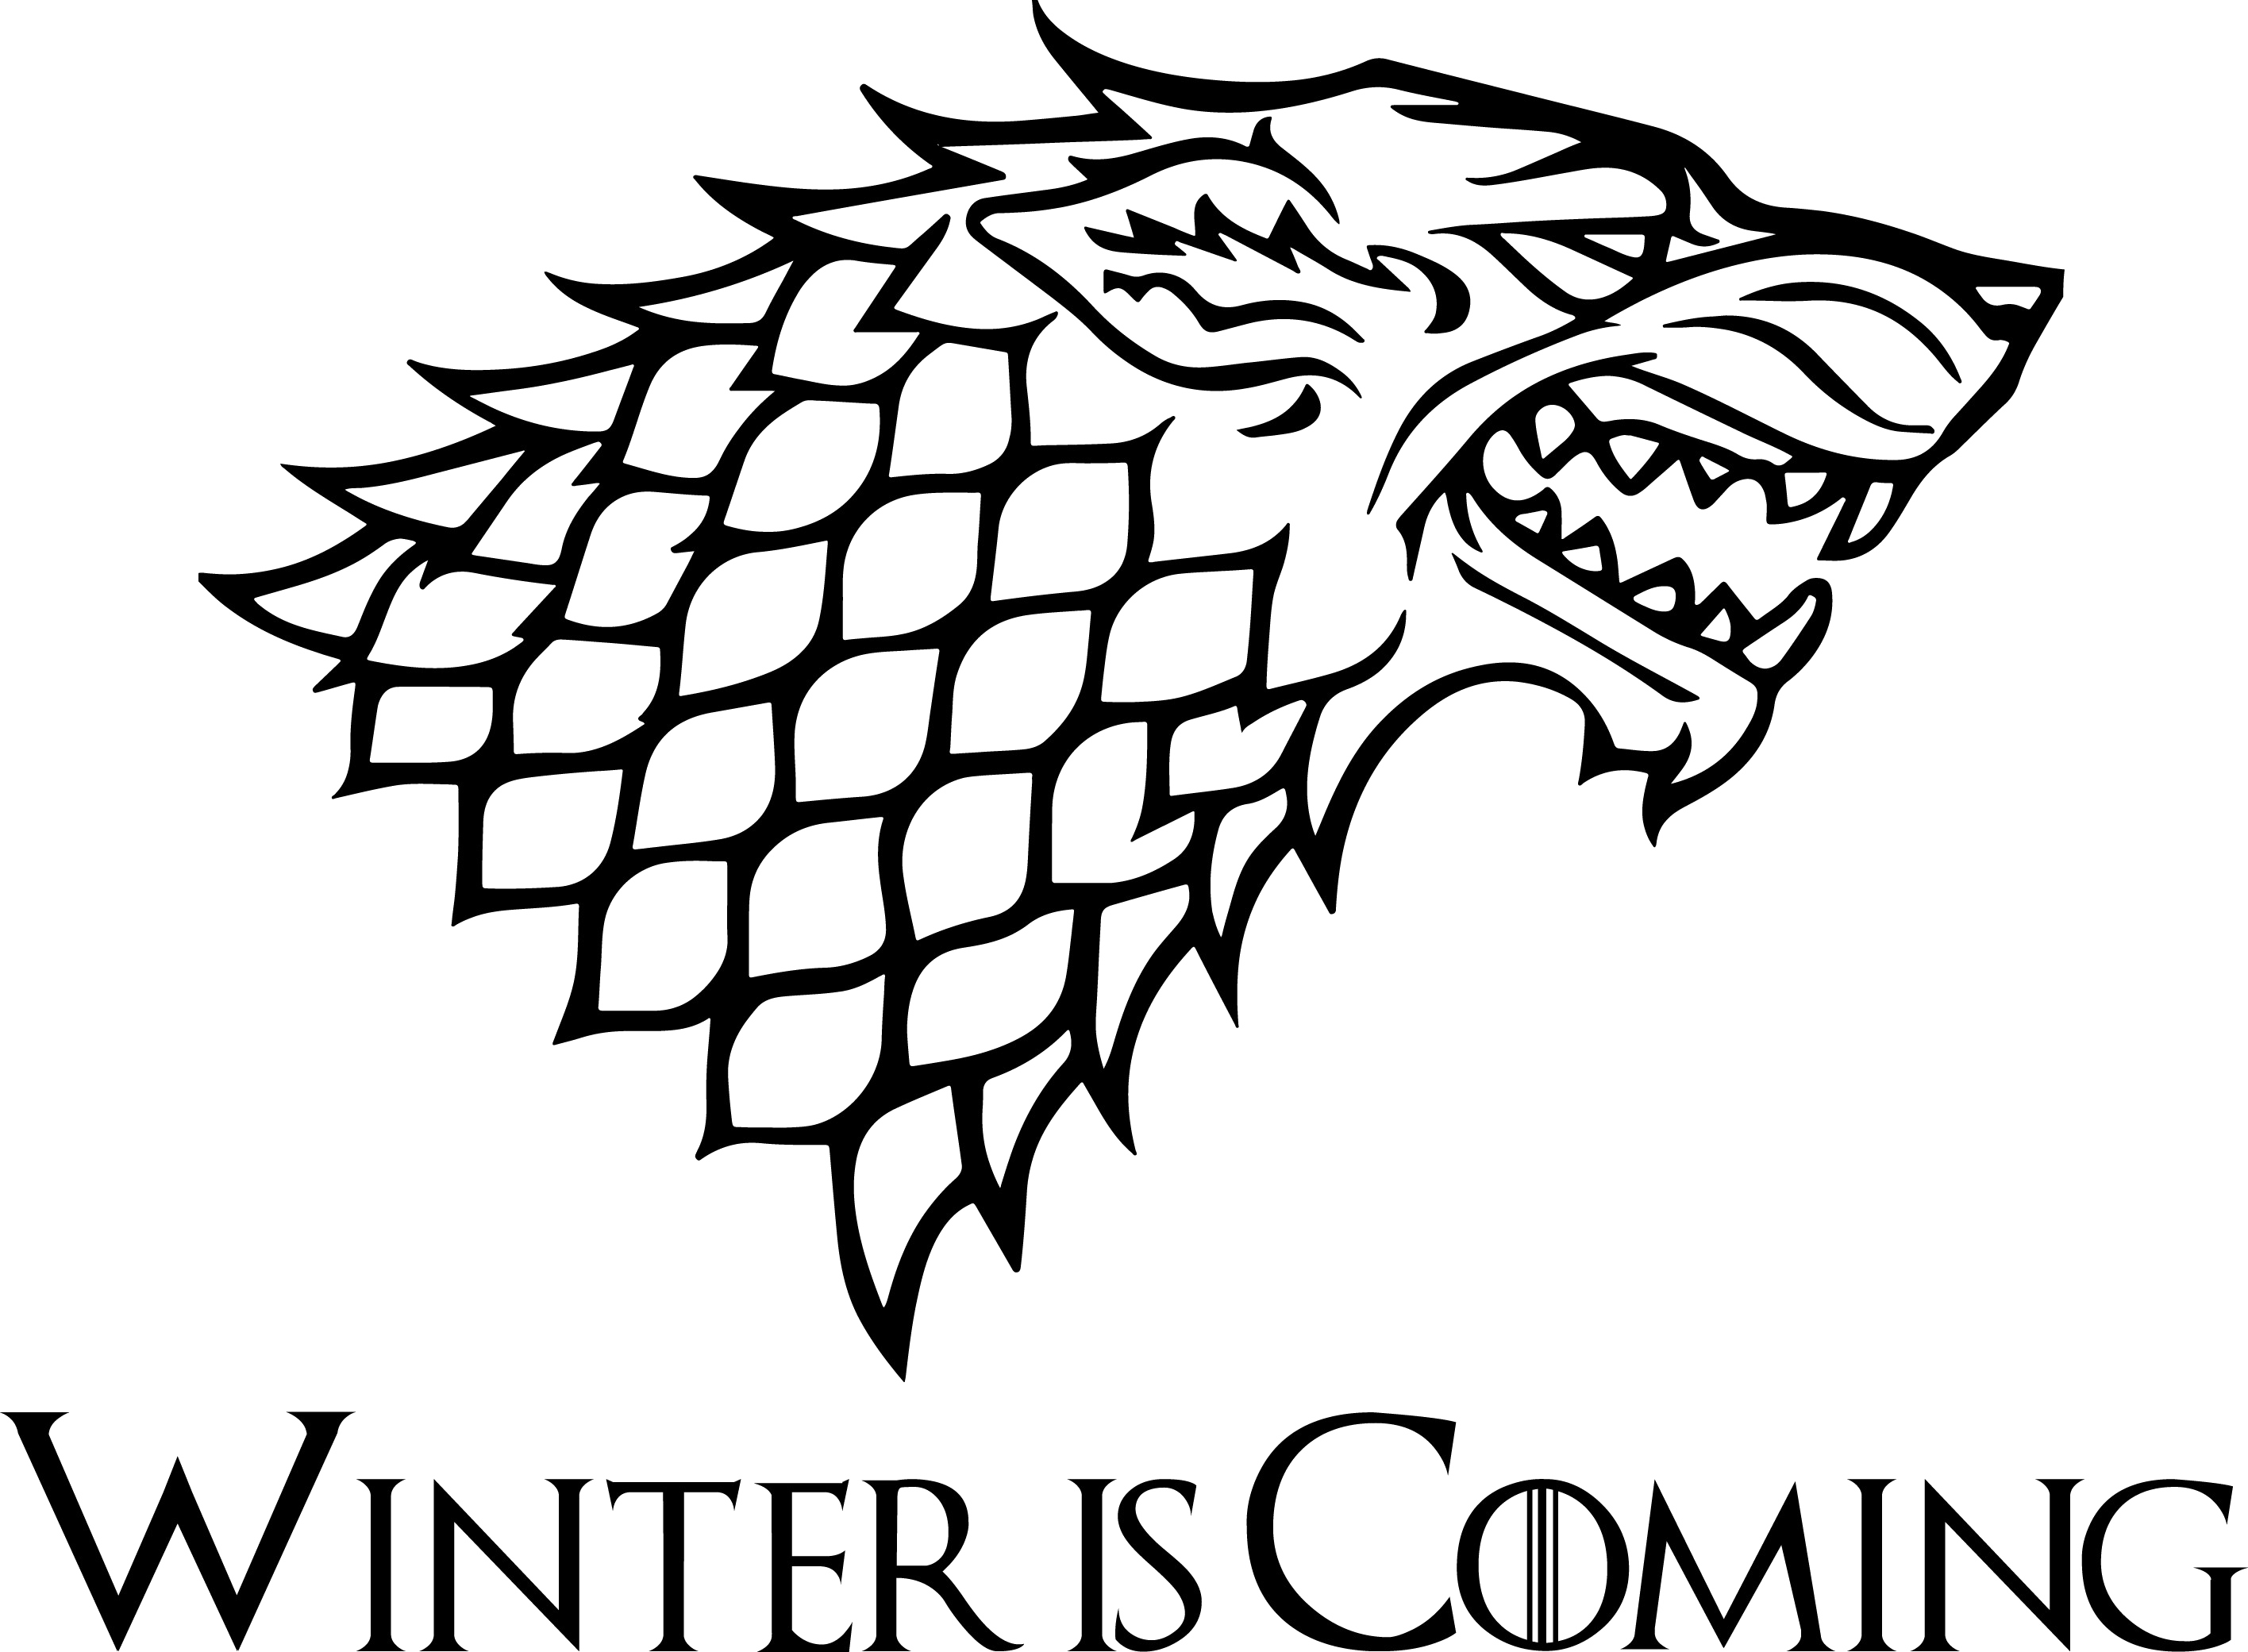 A Game of Thrones Bran Stark House Stark Decal.